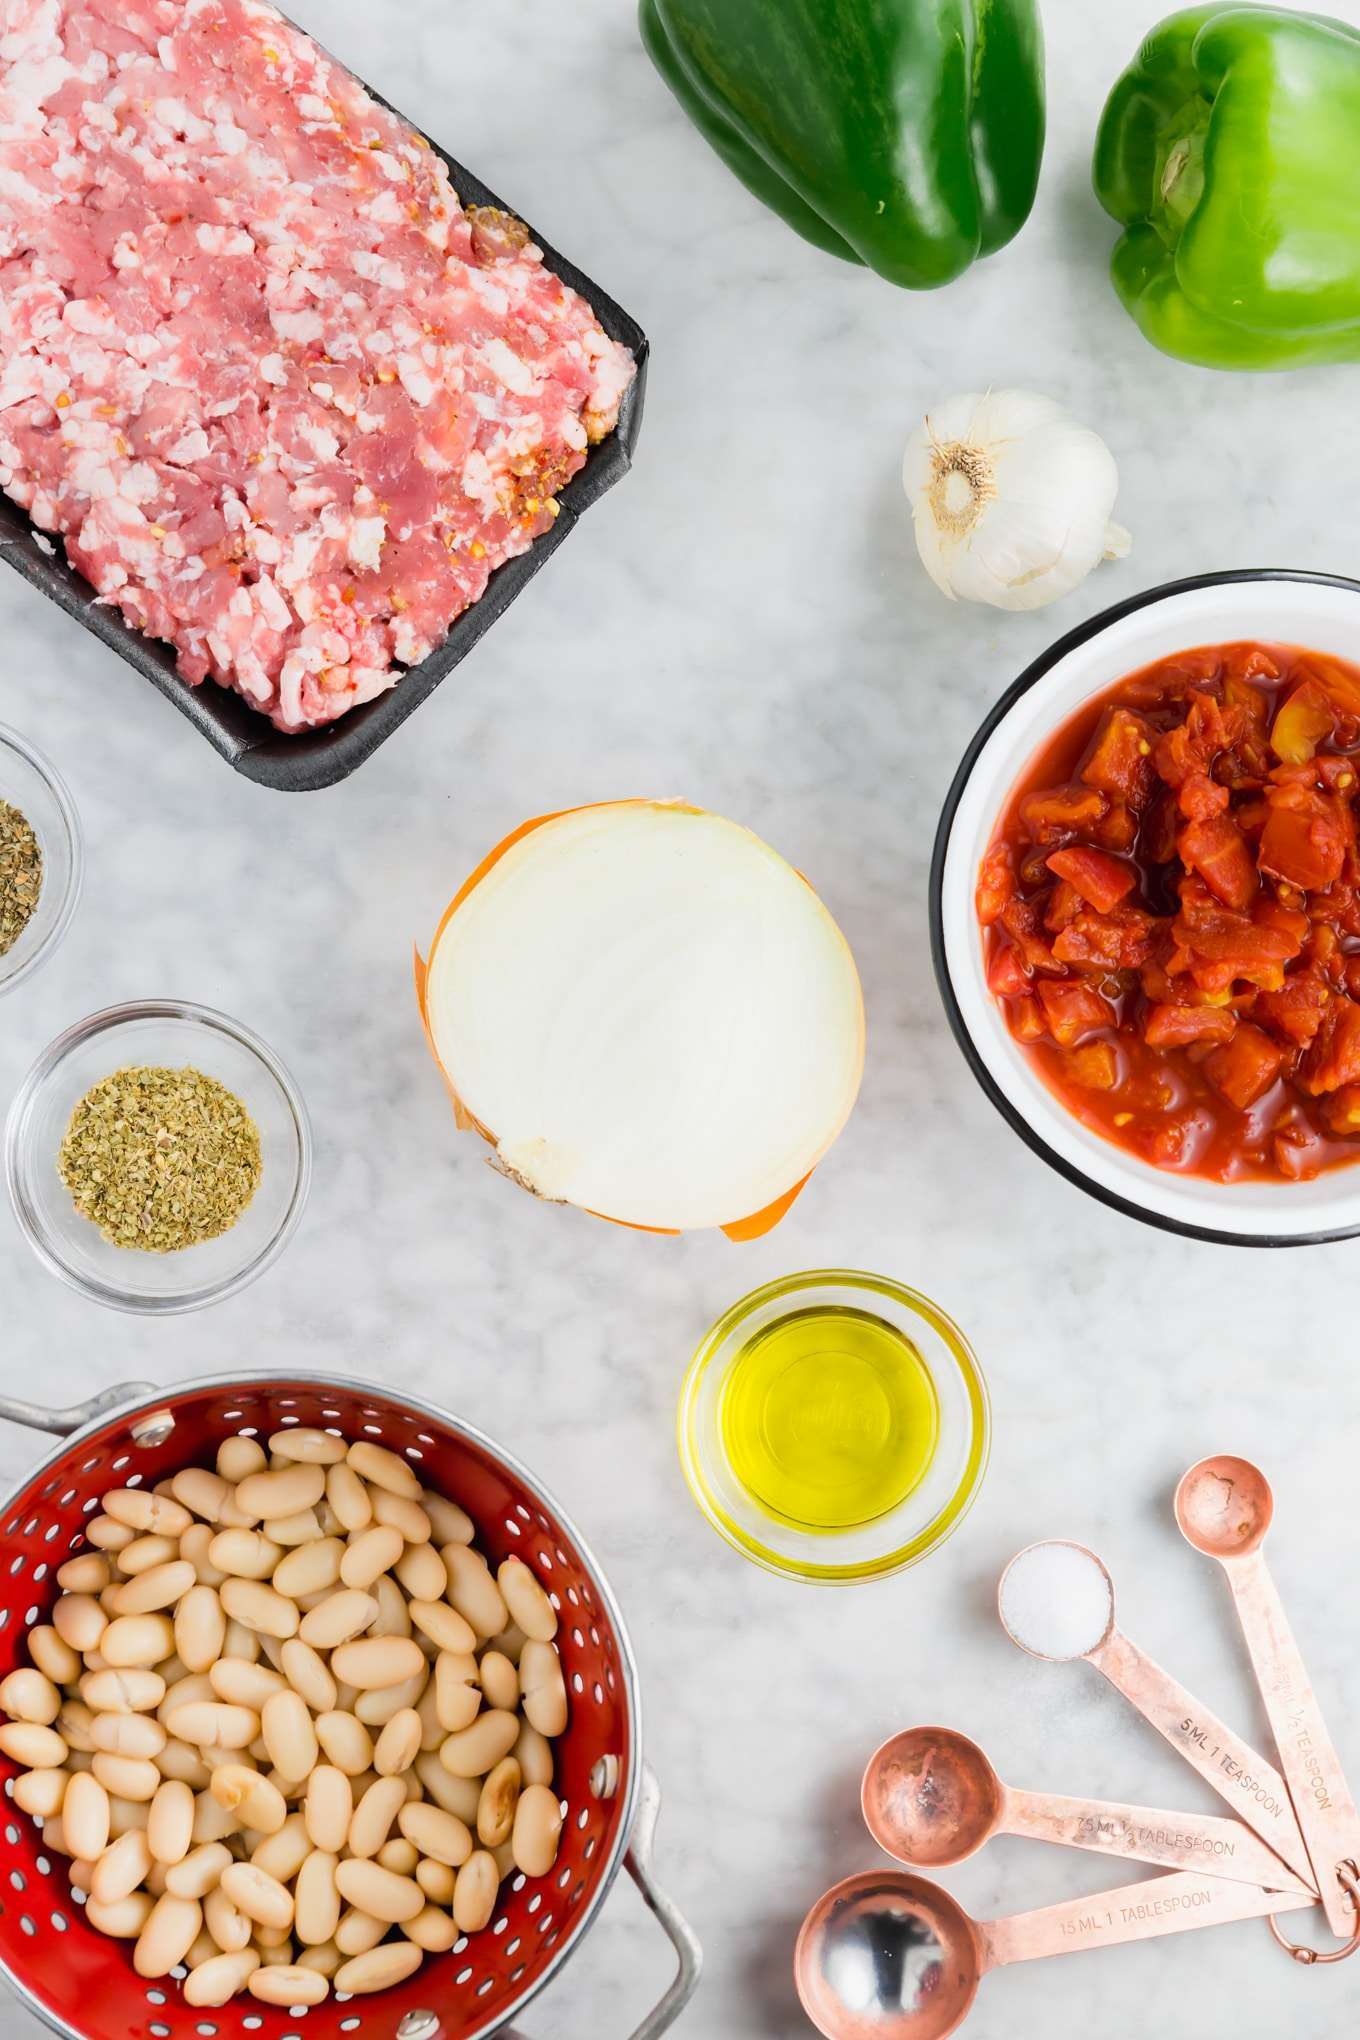 A photo of raw italian sausage, crushed tomatoes, onion, beans, olive oil, herbs, spices, and garlic ready to make white bean italian sausage stew.